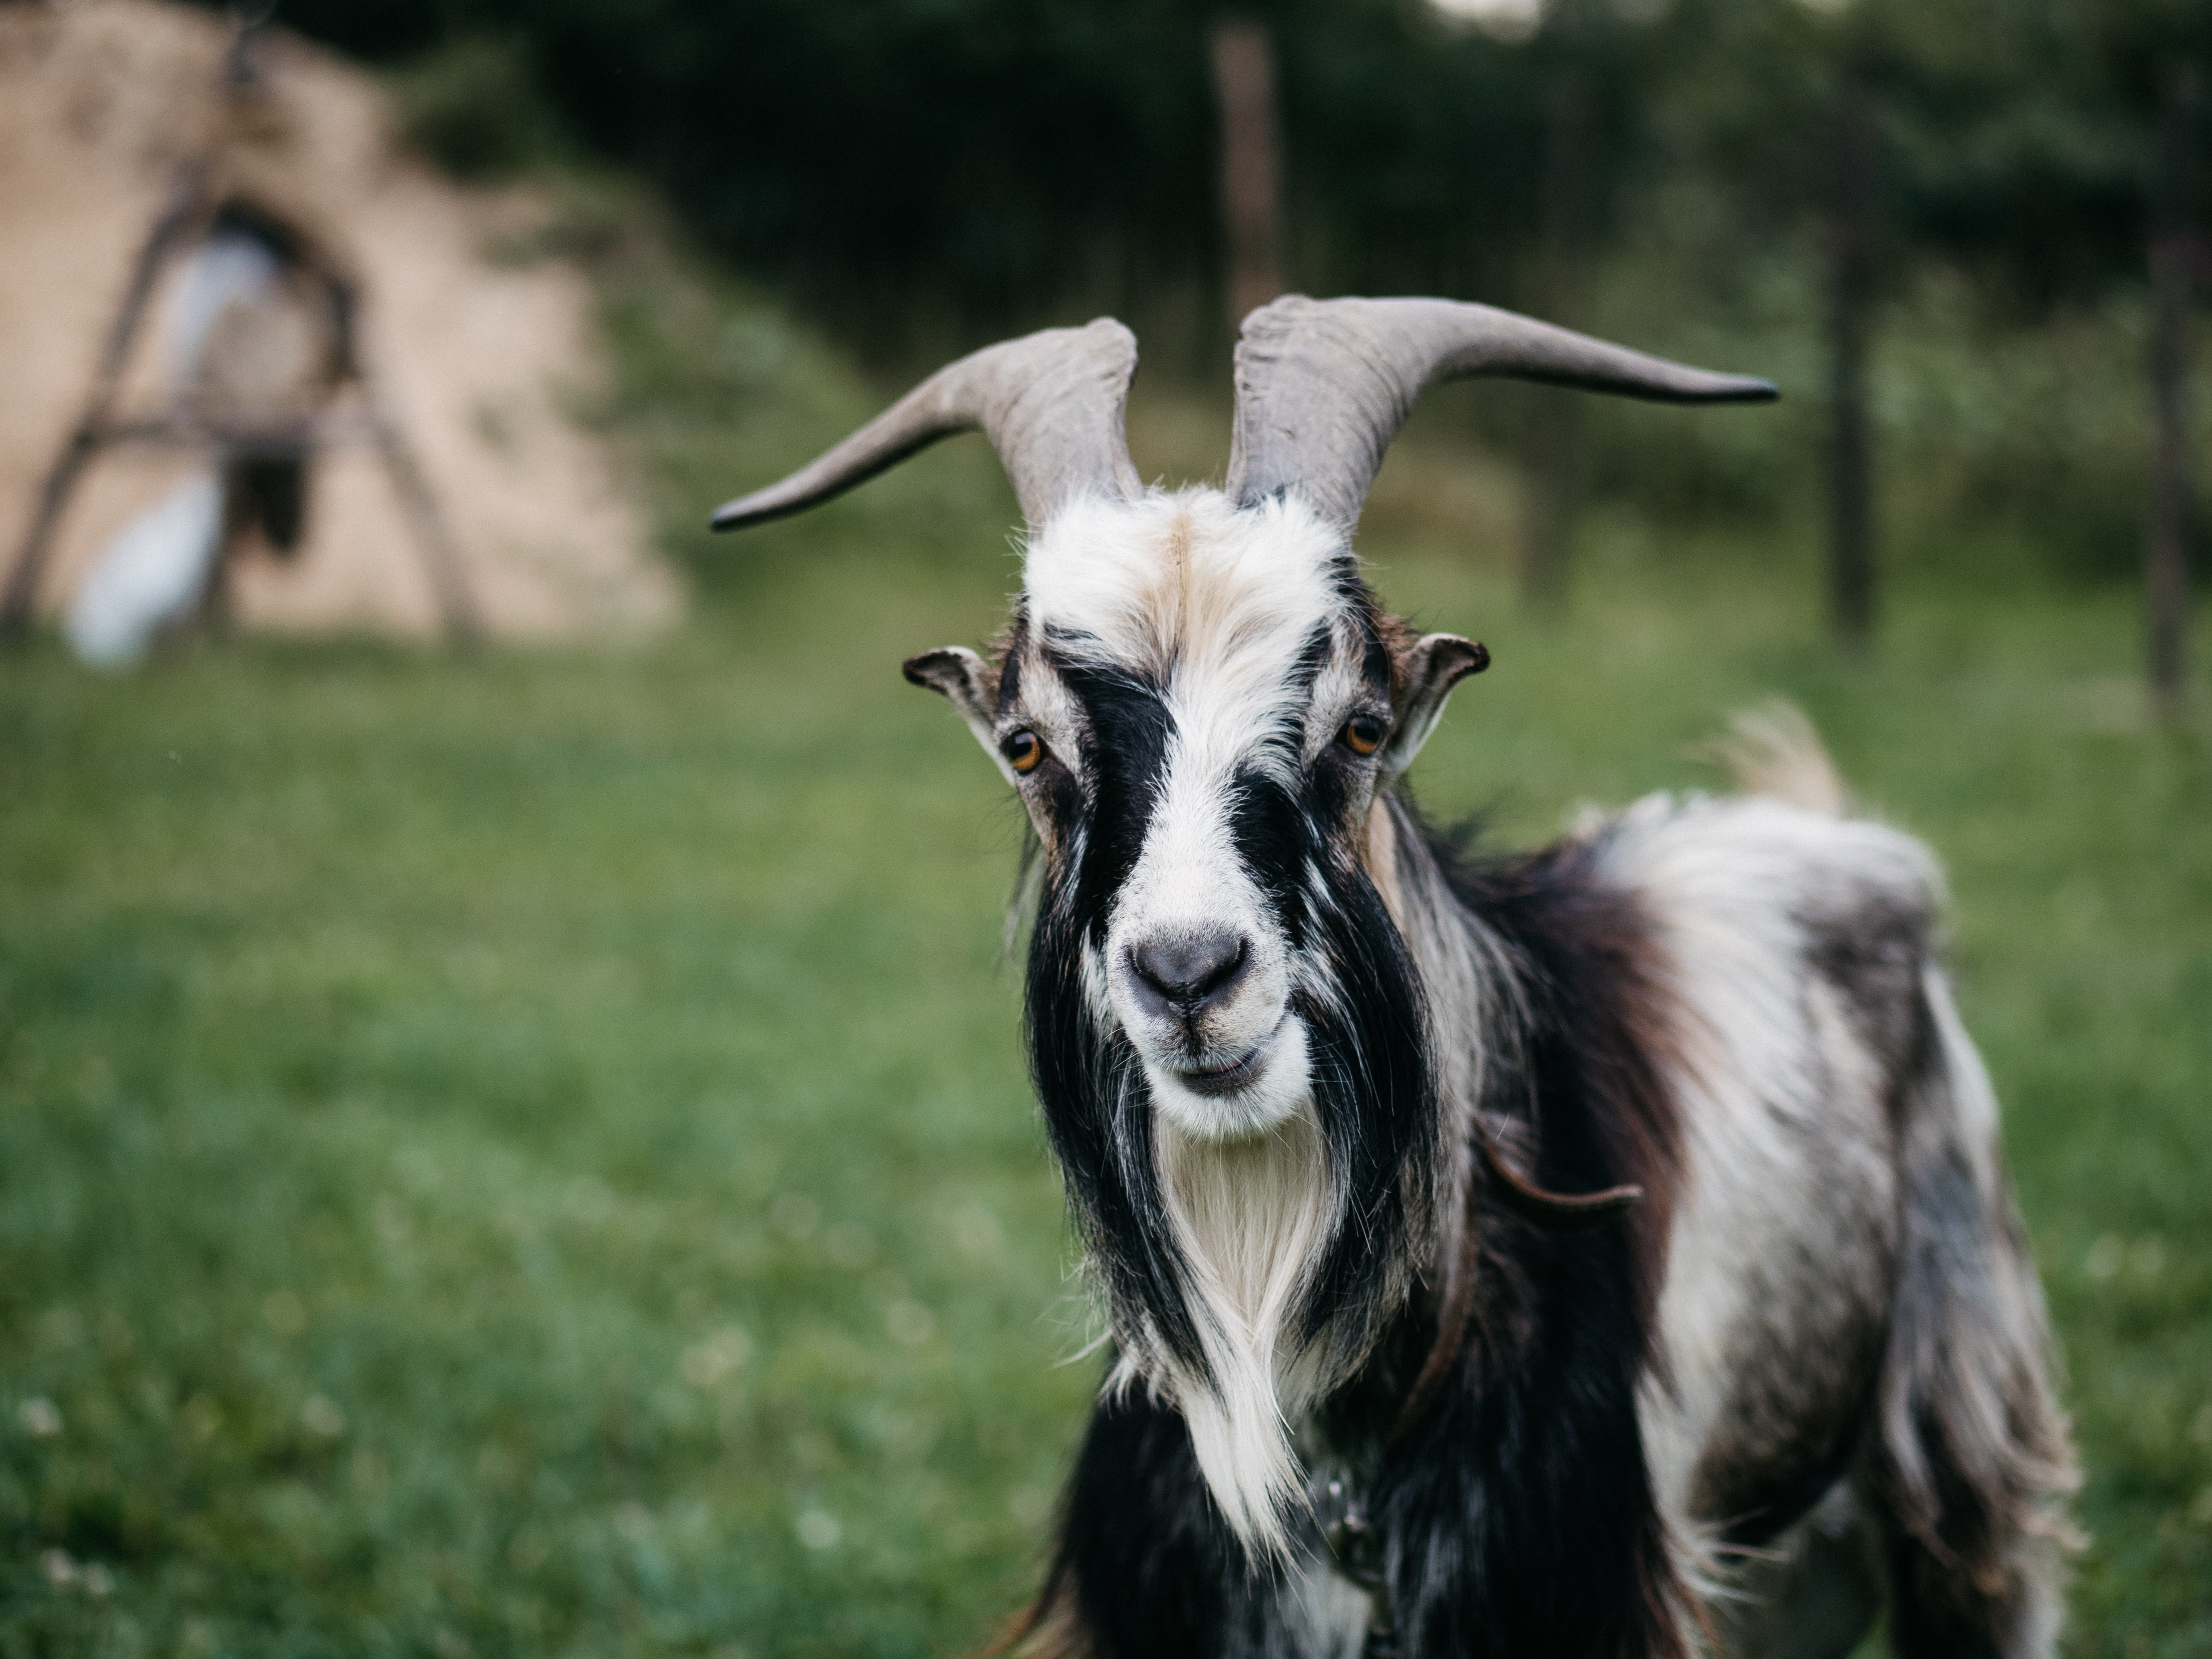 black and white goat on grass field during day